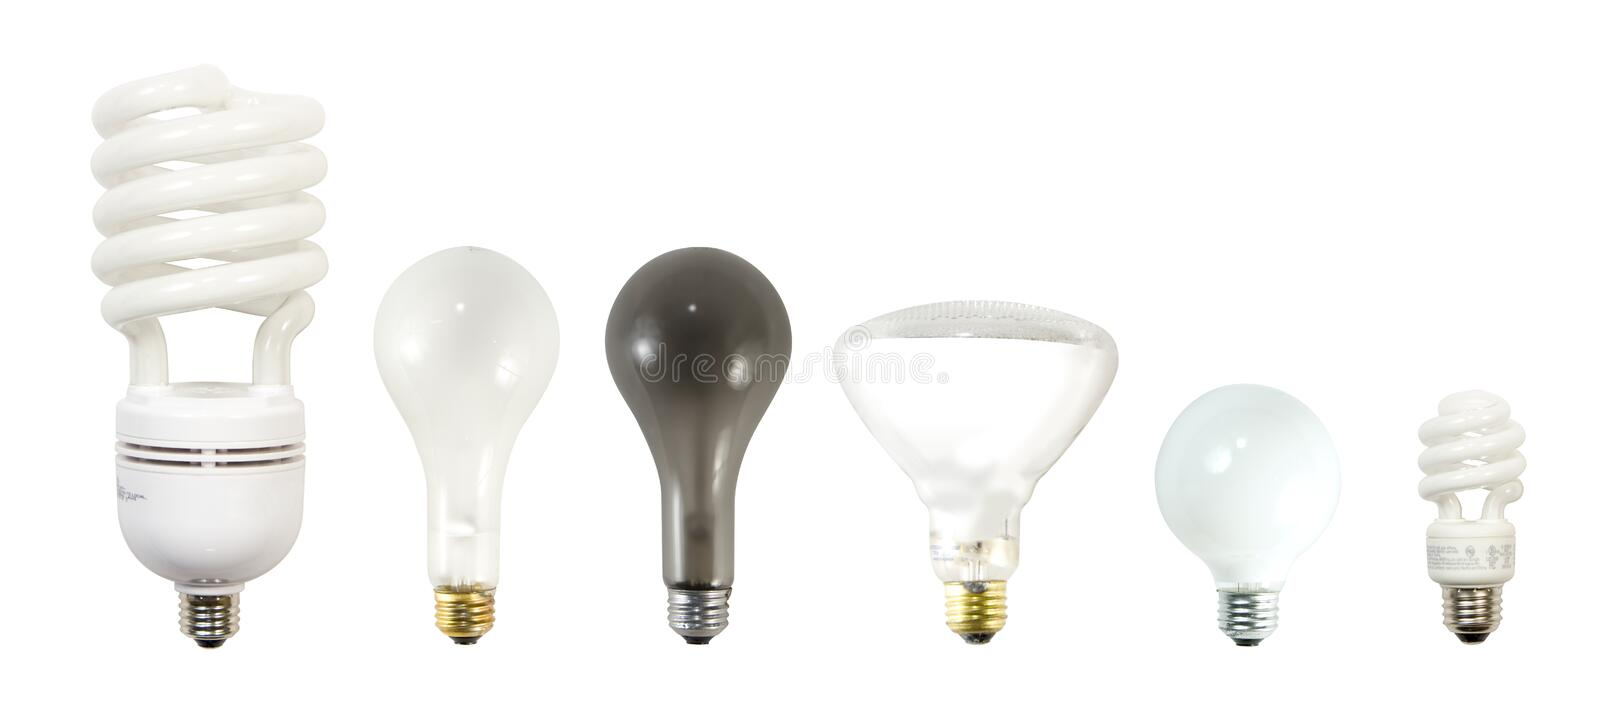 Light Bulbs. Various incandescent and fluorescent light bulbs. Large fluorescent, incandescent, burned out bulb, flood light, decorative bulb, small fluorescent royalty free stock photos